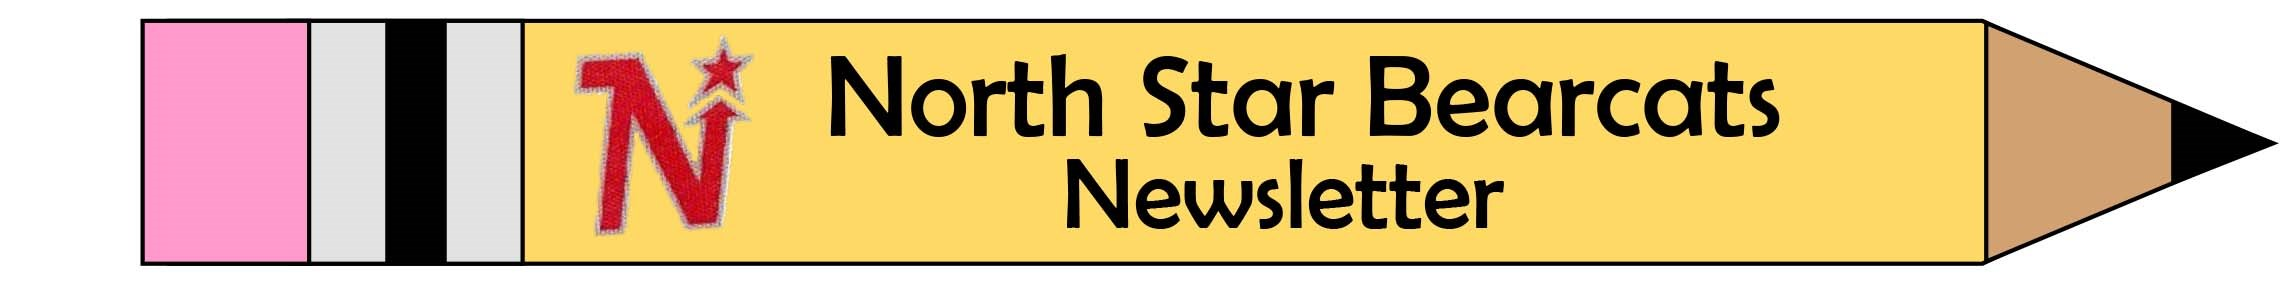 North Star Newsletter Letterhead